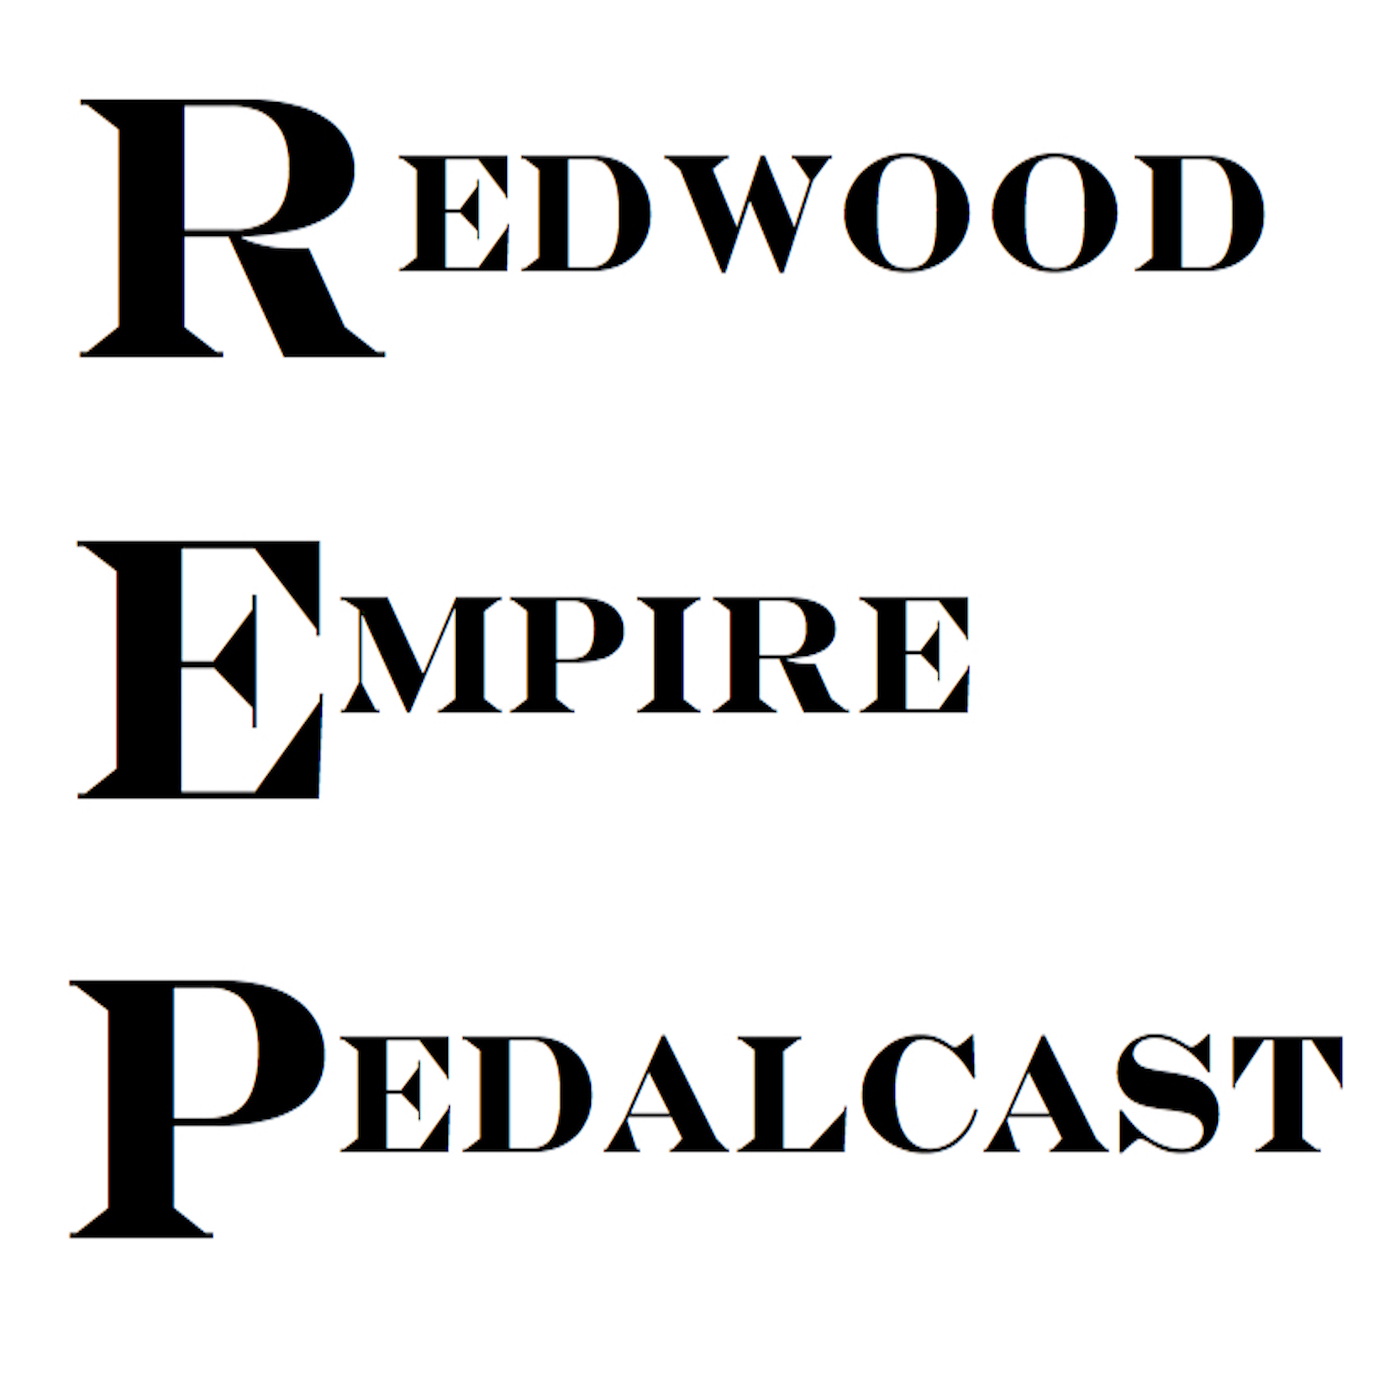 The Redwood Empire Pedalcast